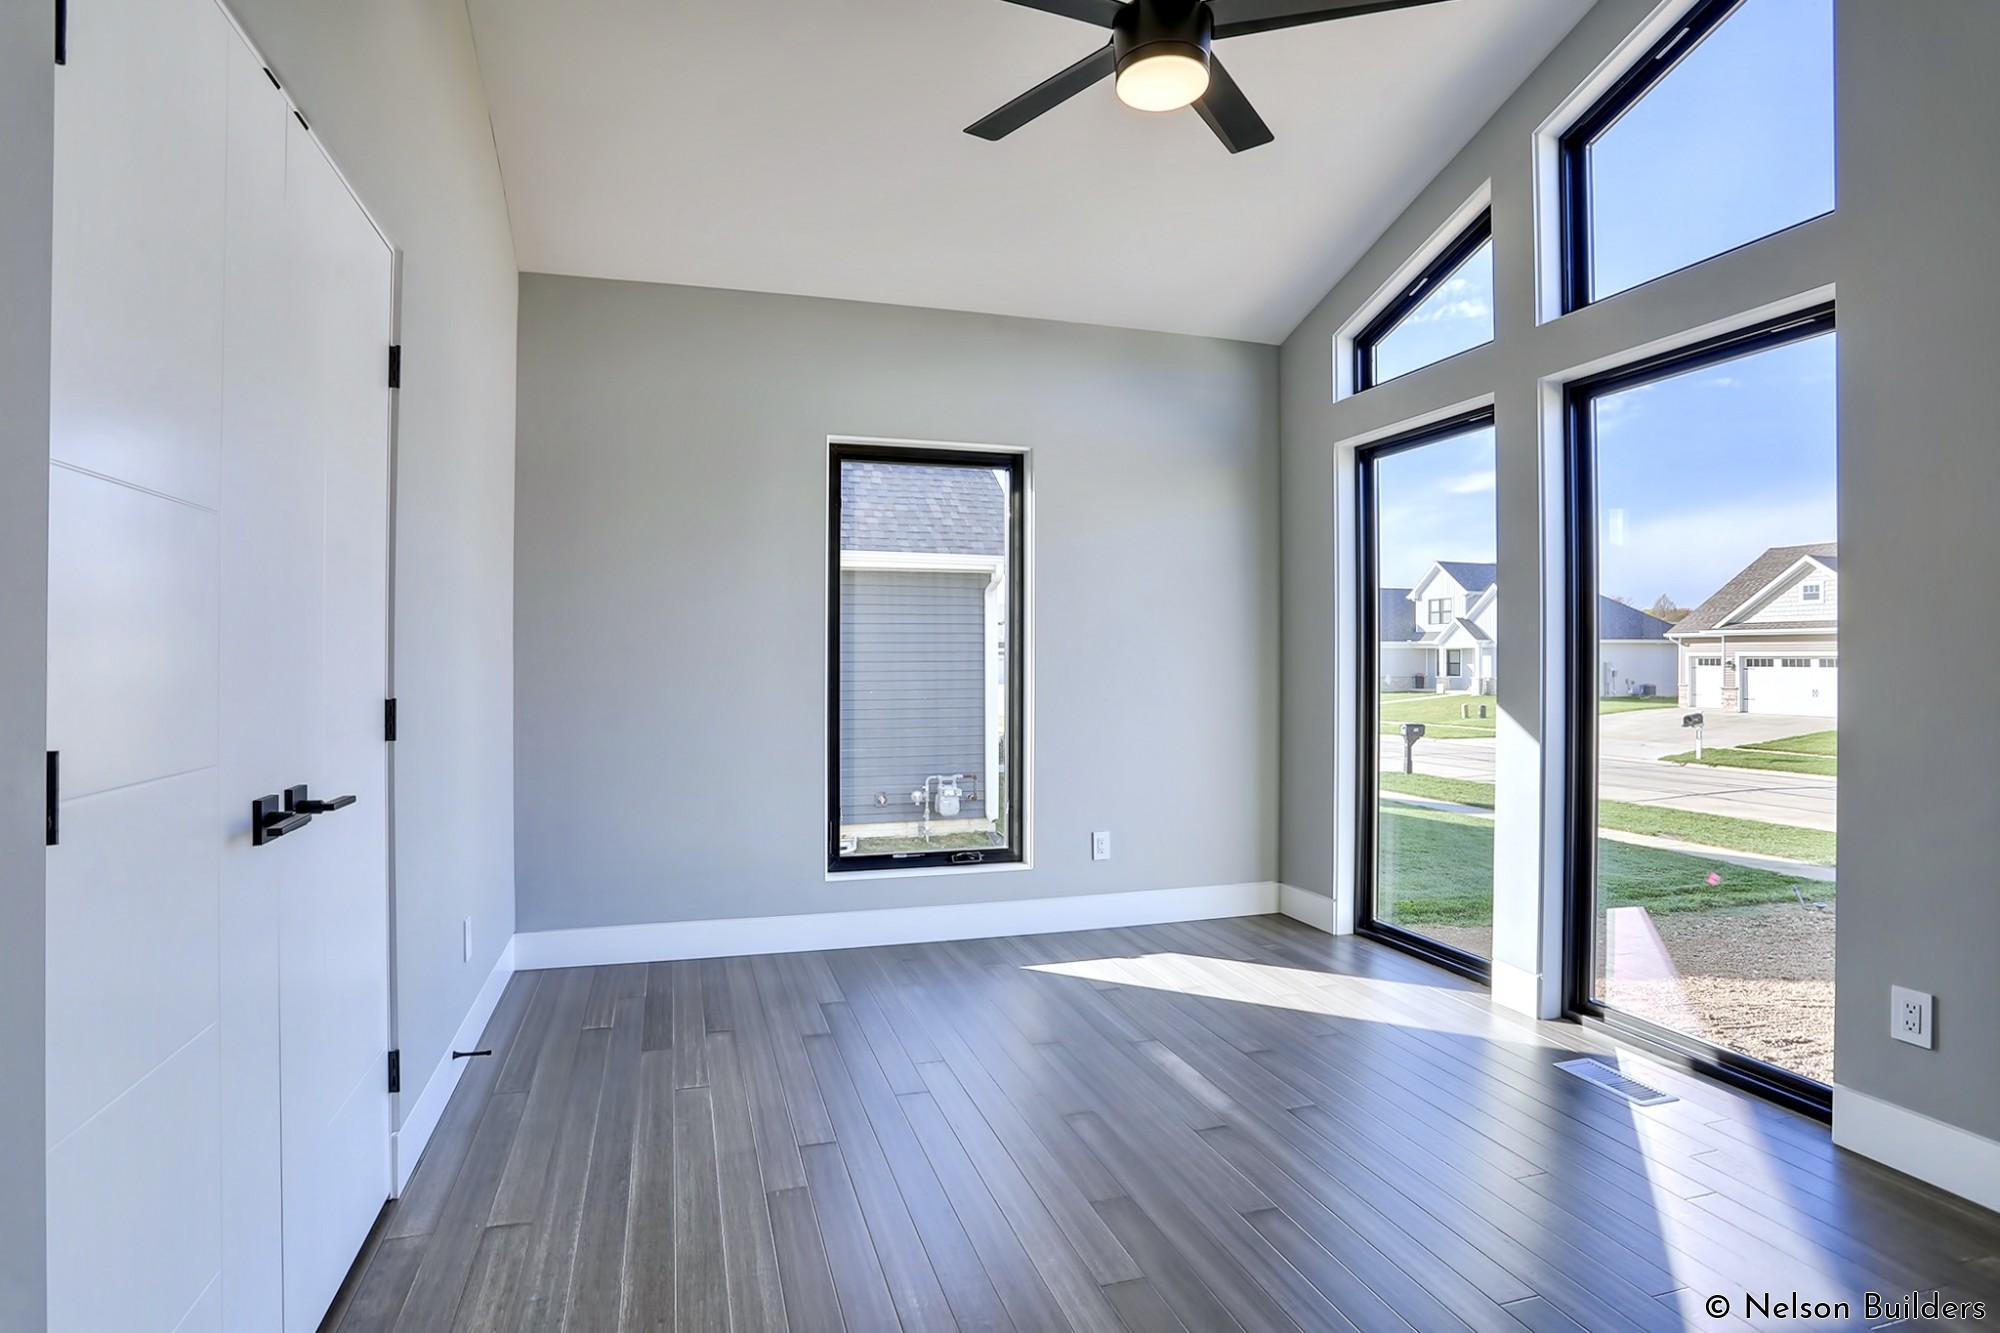 Just off the entry, the office overlooks the front yard and showcases the minimal window and door return details, along with the flush baseboard.